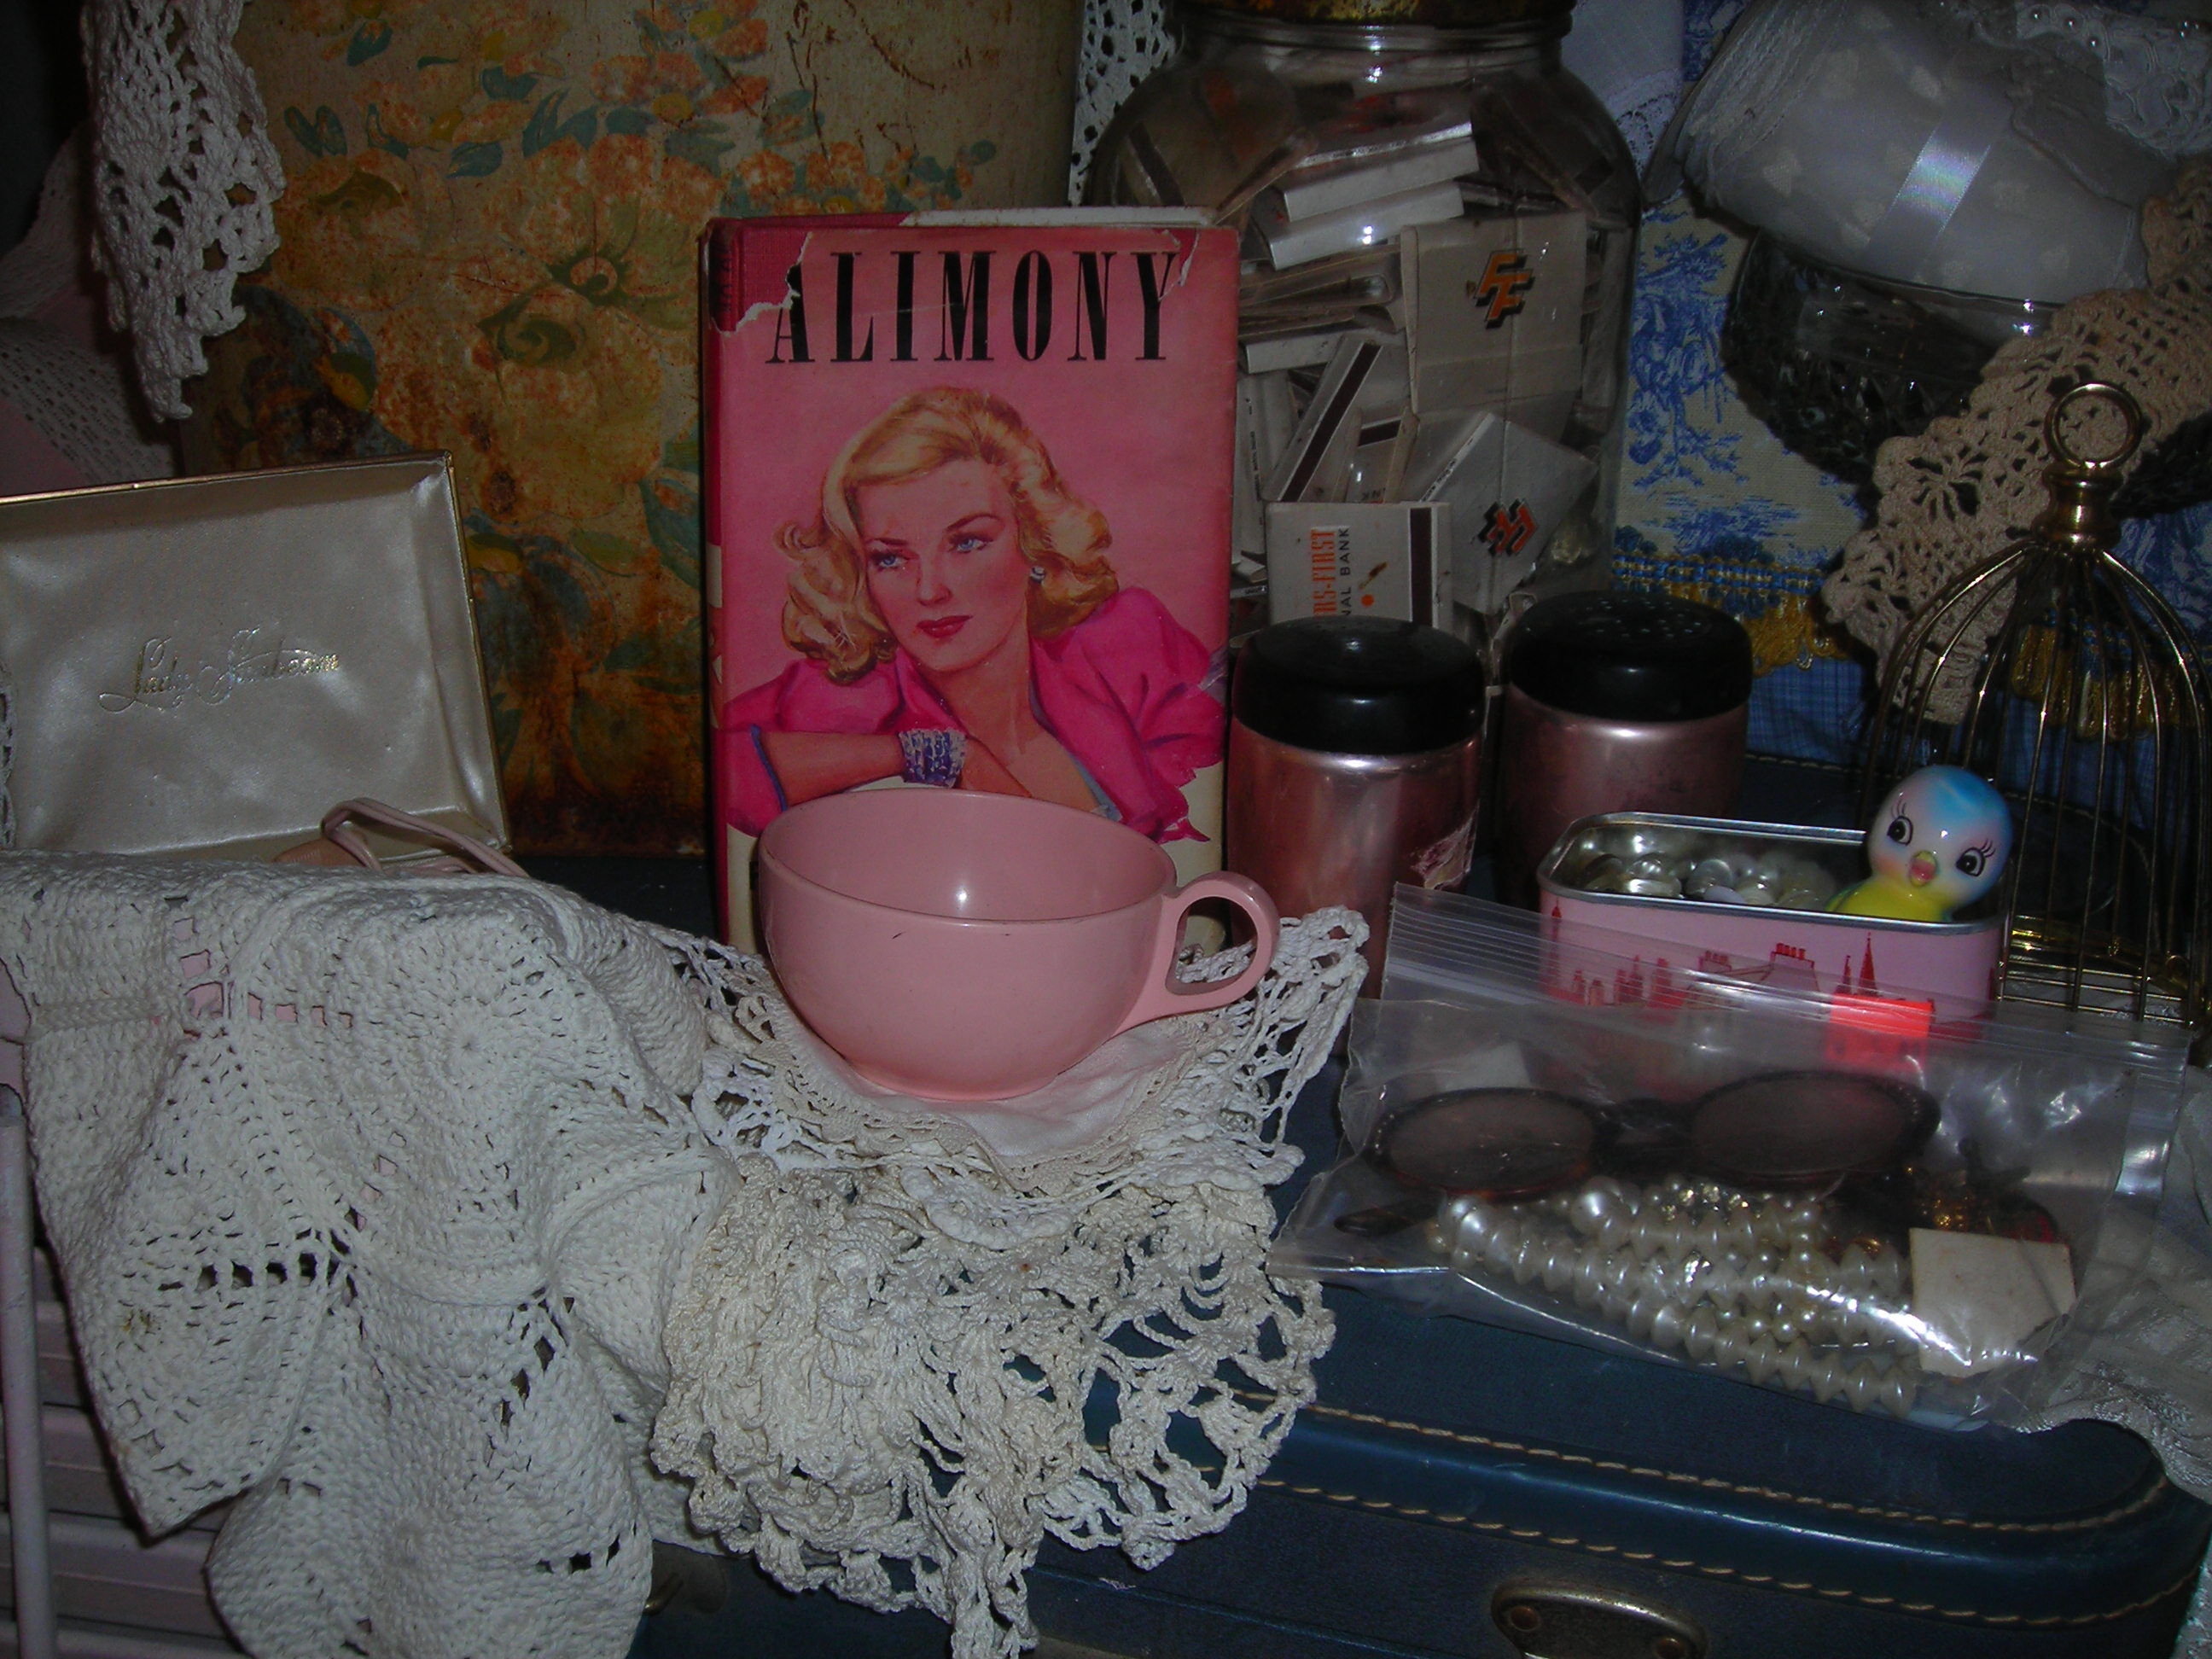 a few of my lovelies ... love that 'alimony' book from the 40s! and ohmygosh, that pink melamine cup!!